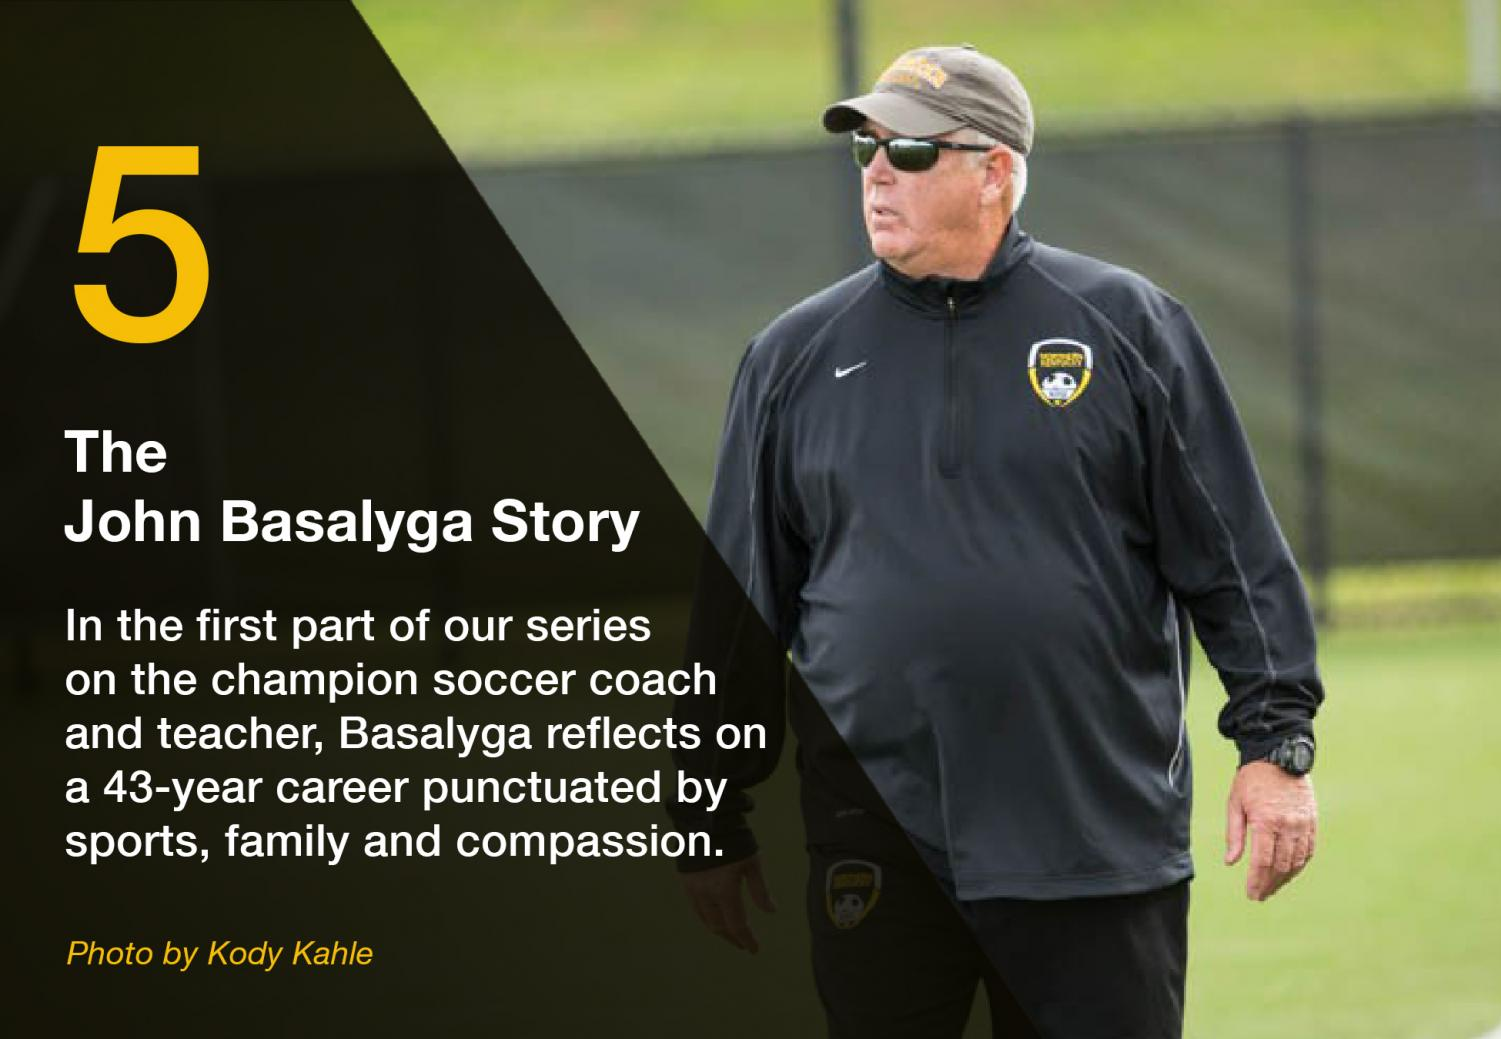 In+the+first+part+of+our+series+on+the+champion+soccer+coach+and+teacher%2C+Basalyga+reflects+on+a+43-year+career+punctuated+by+sports%2C+family+and+compassion.